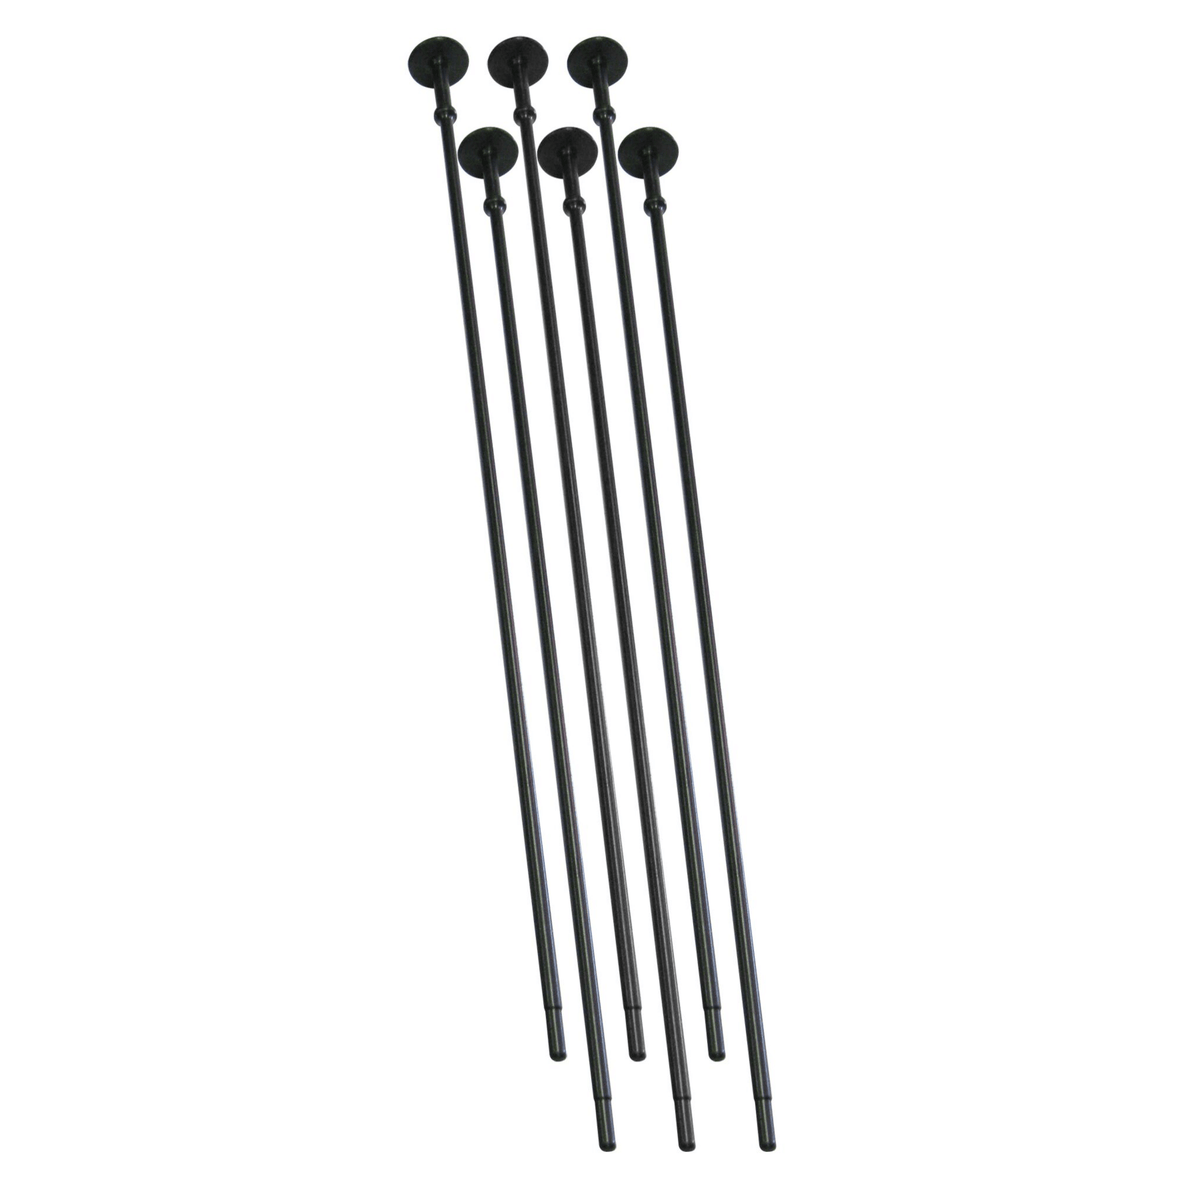 Rifle Rod Add-On (6 Pack)